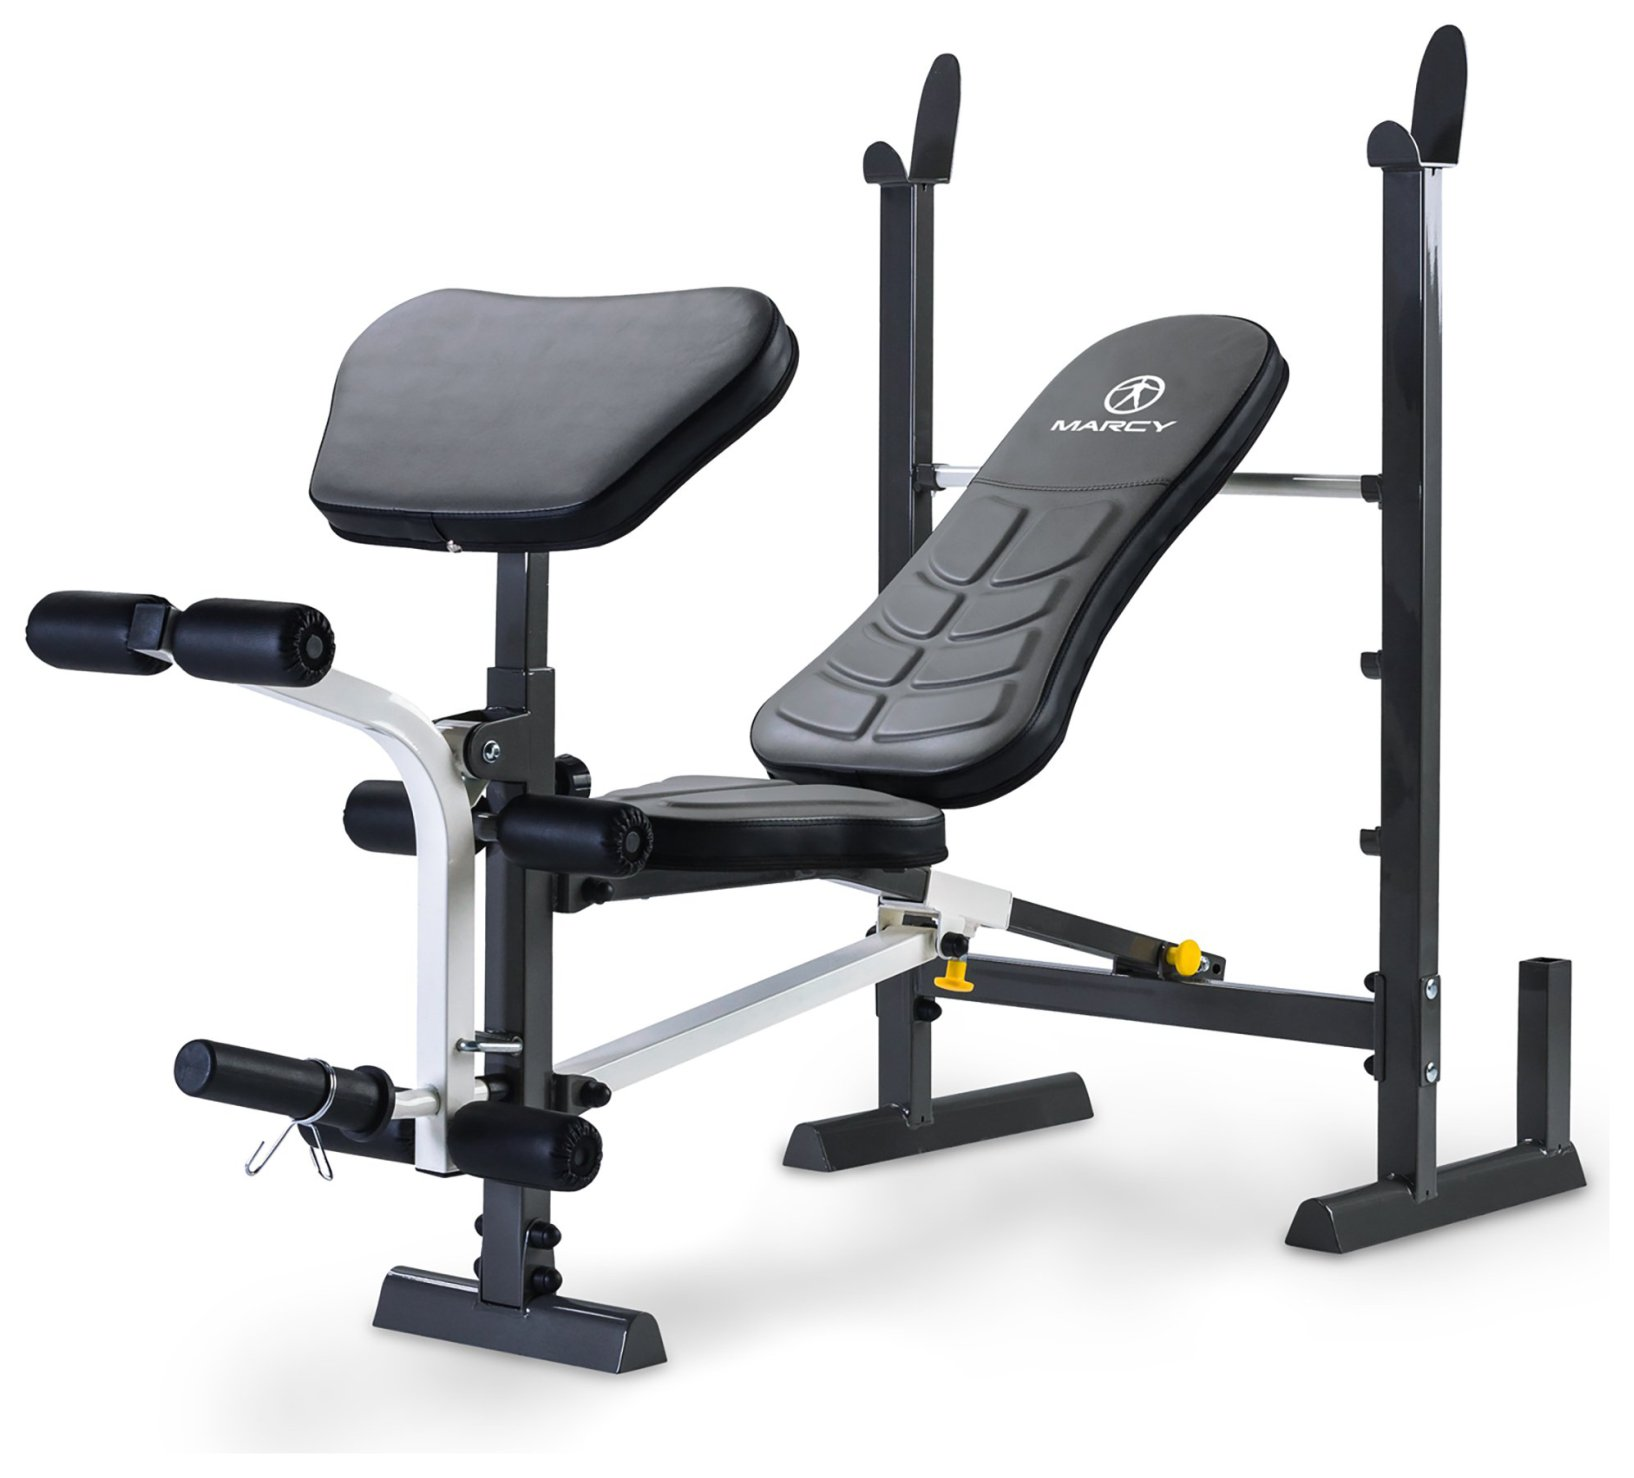 Craigslist Weight Bench | Craigslist Houston Exercise Equipment | Olympic Weight Bench Set for Sale